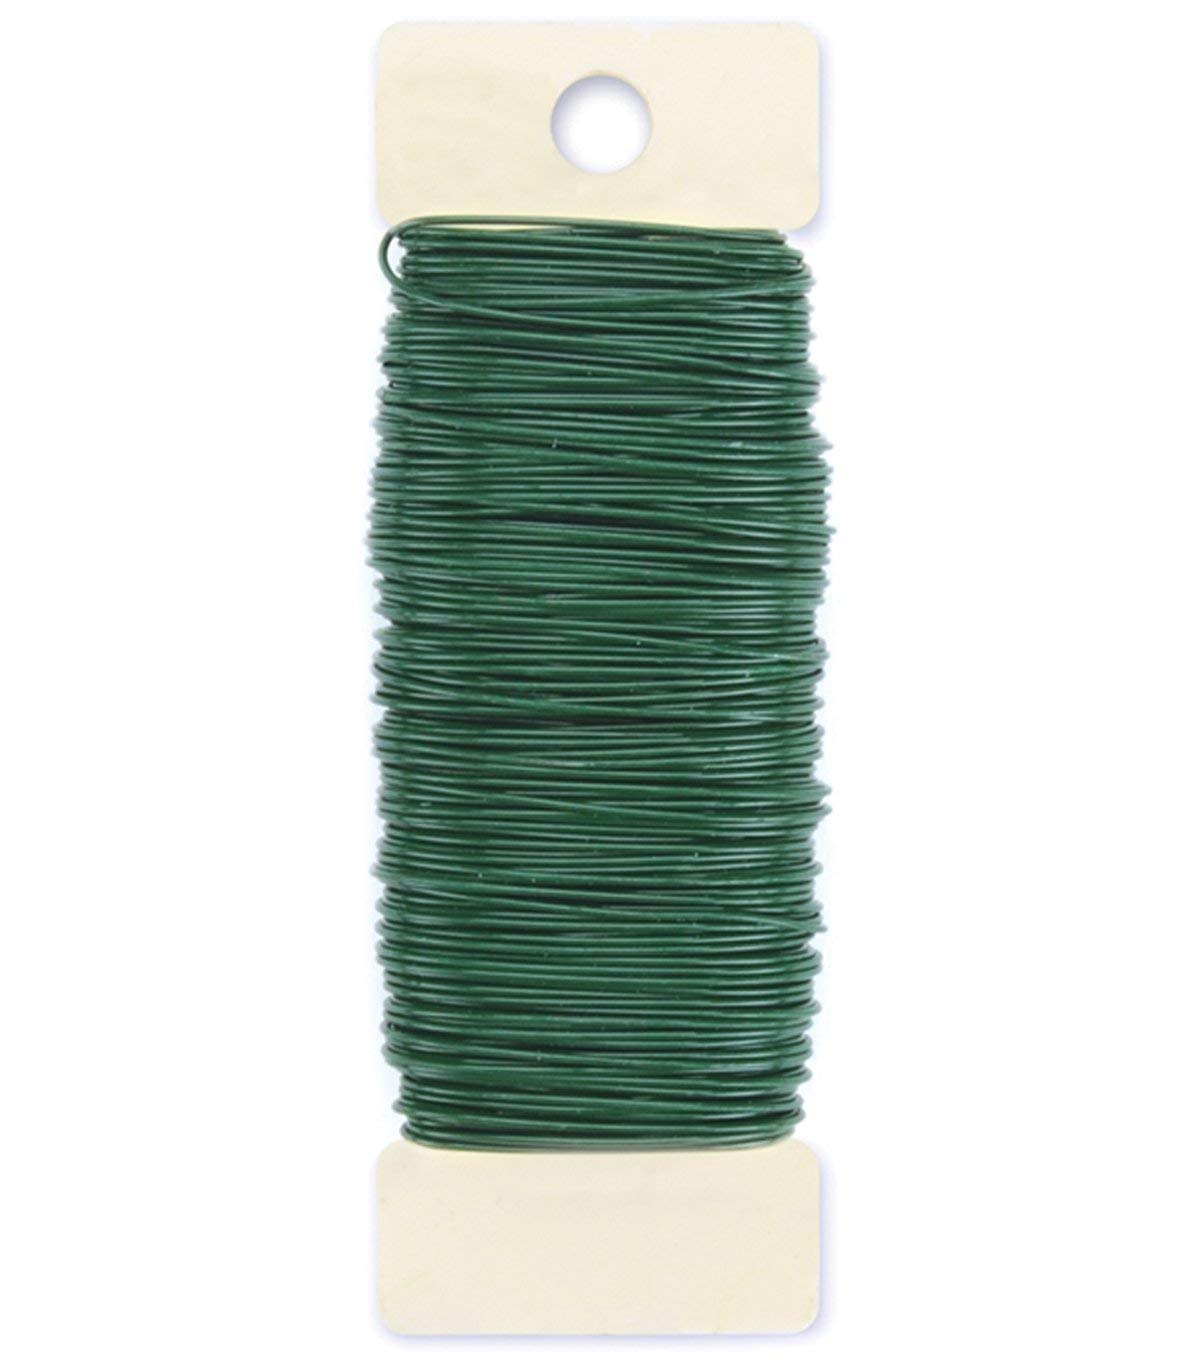 6 Inch Picks Wooden Floral Green Wood Craft Picks Stakes 100 Count /& 22 Gauge Paddle Wire Bundle w// Flower Crafting eGuide